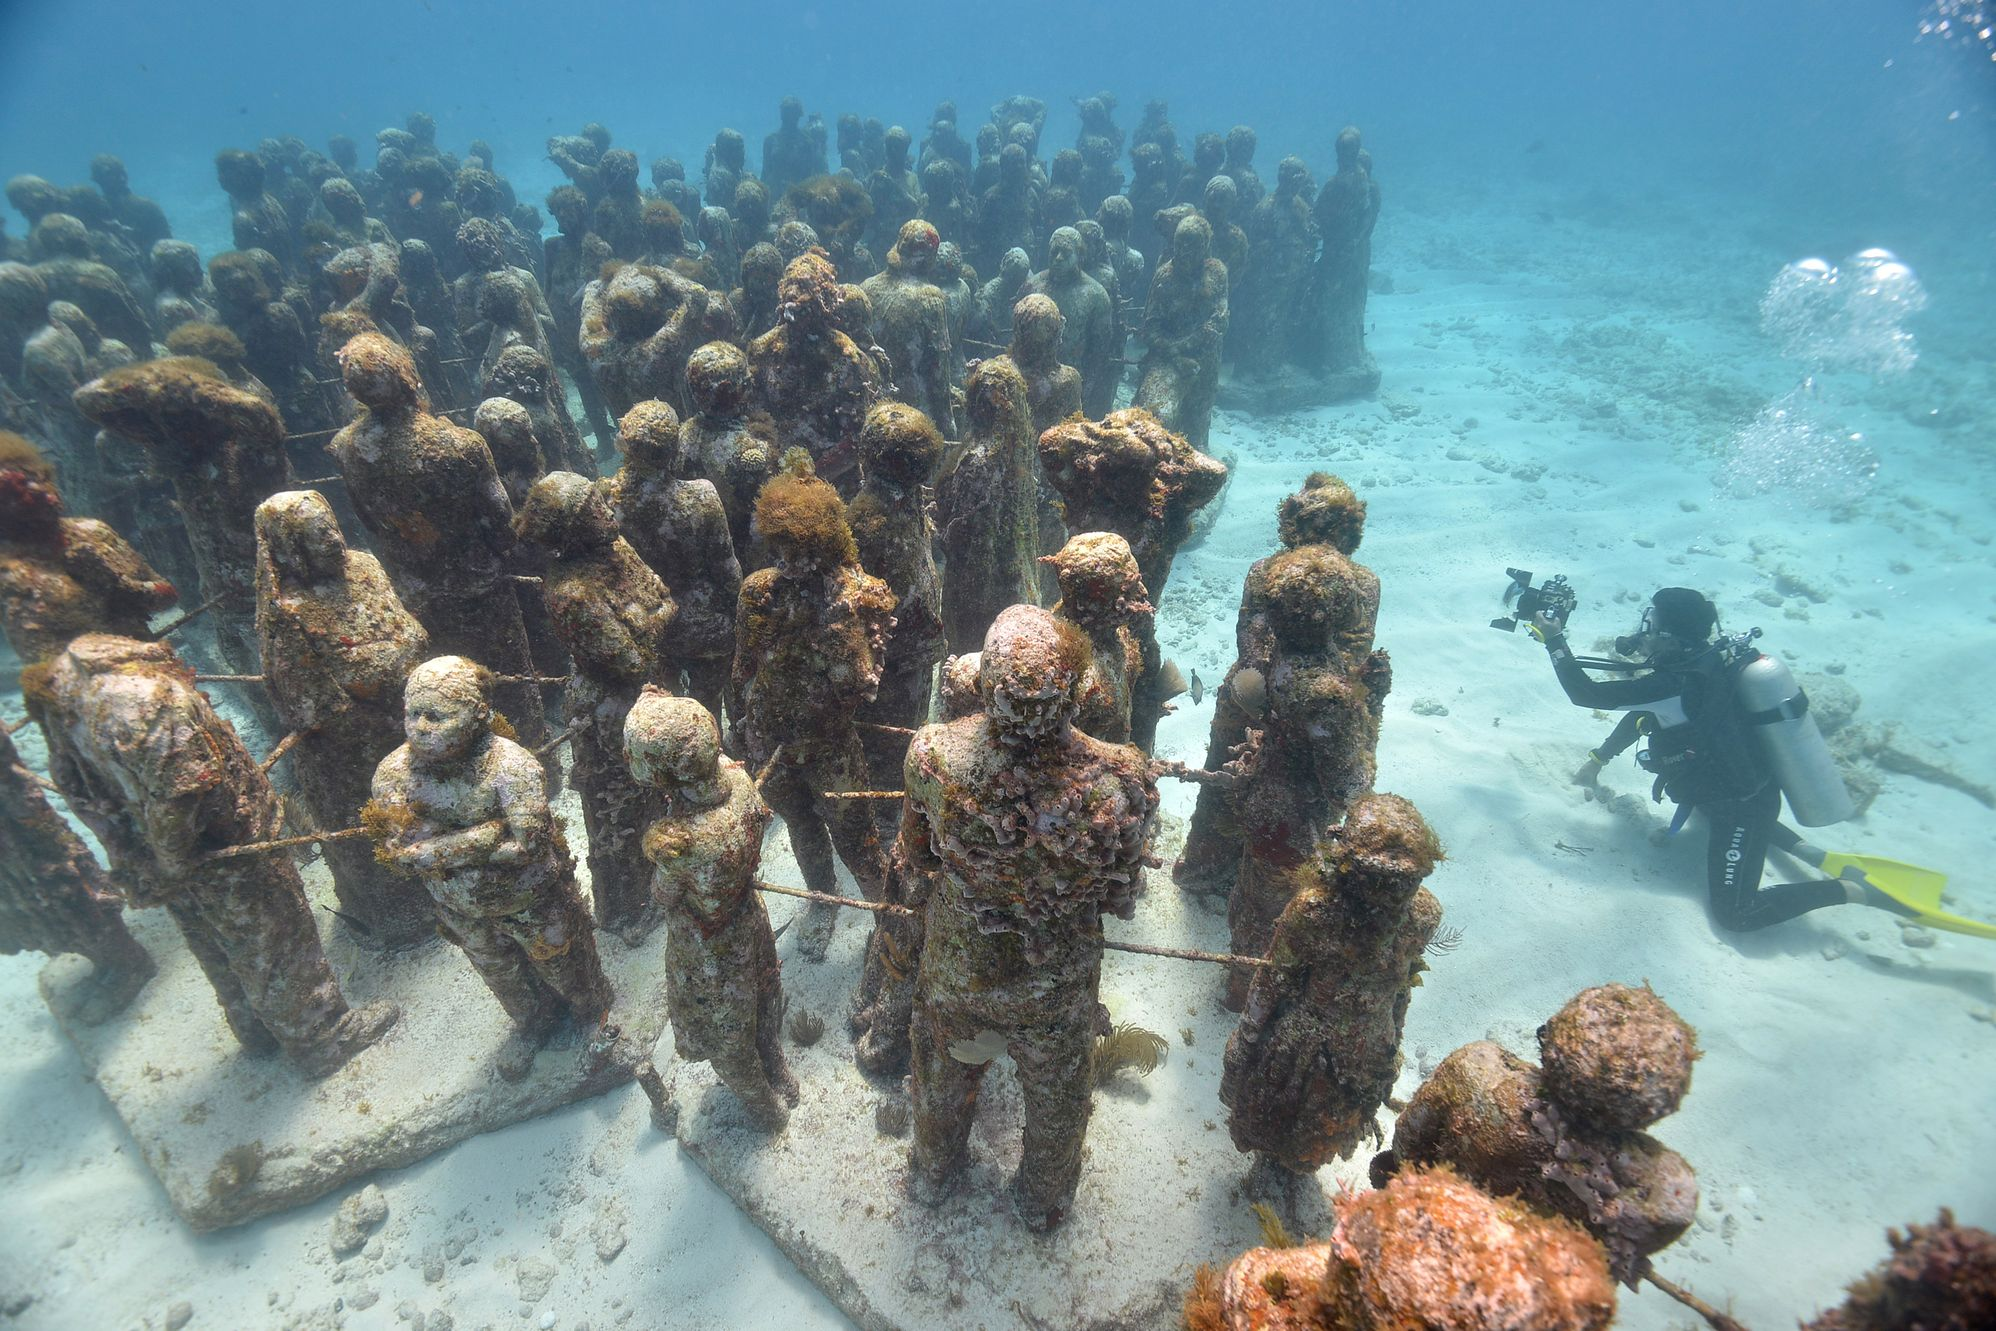 Cancun's Underwater Museum of Art is one of the most magical places on the planet